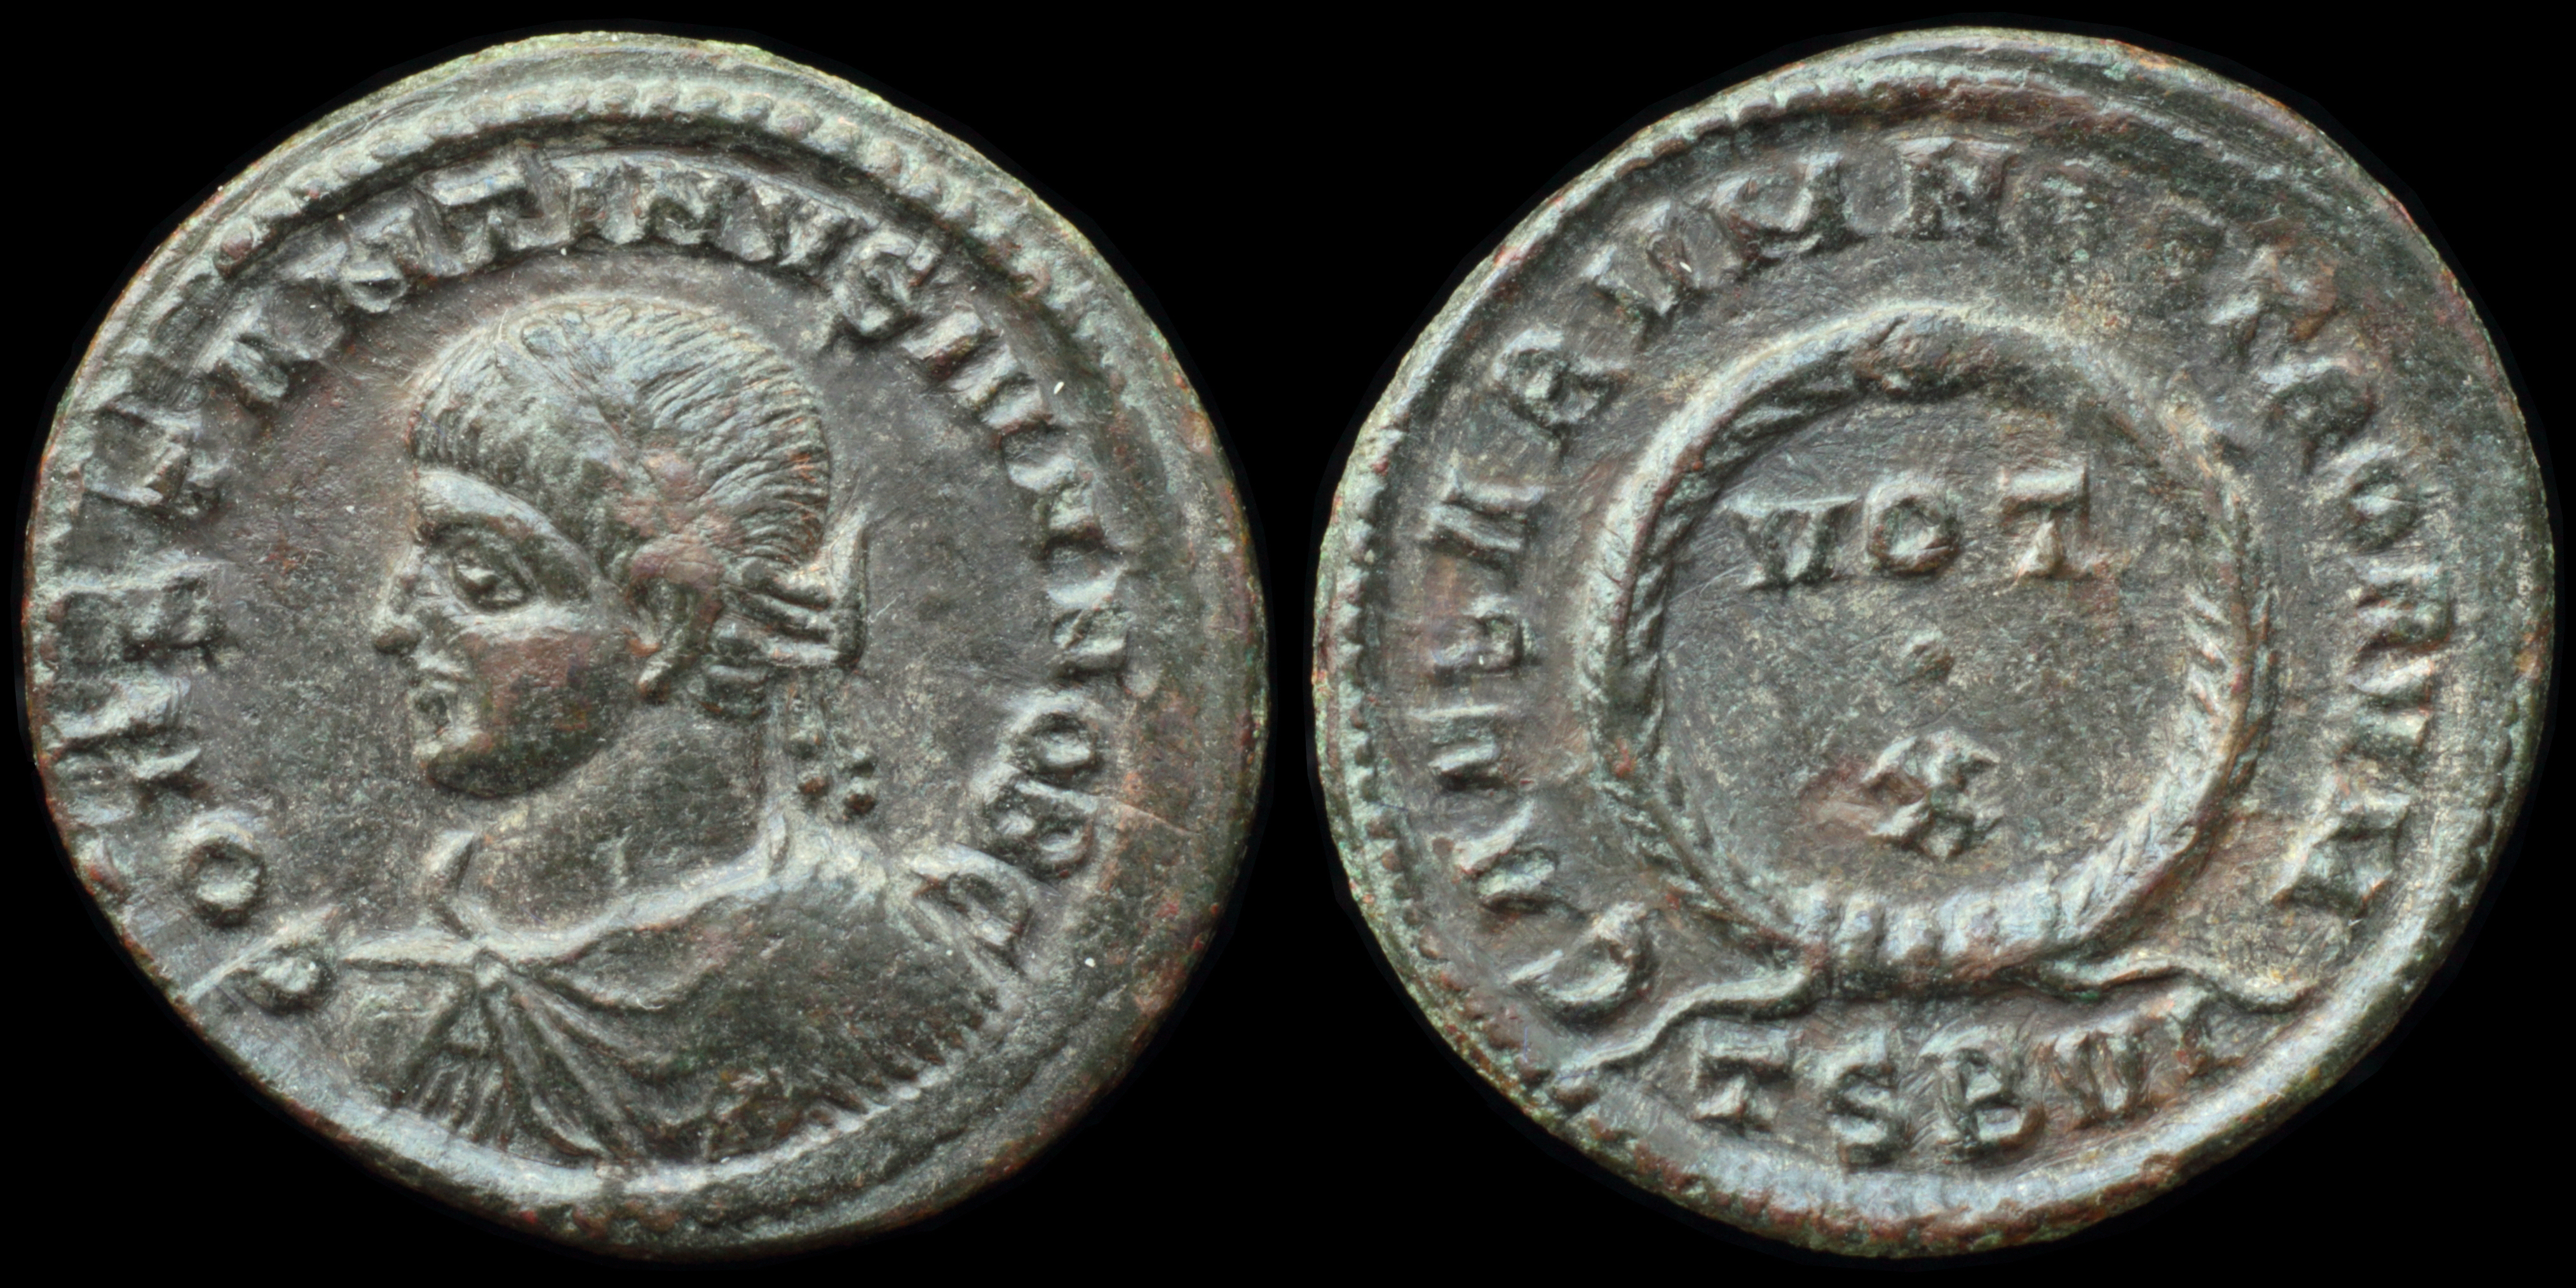 /Files/Images/Coinsite/CoinDB/676_Constantine_II.jpg